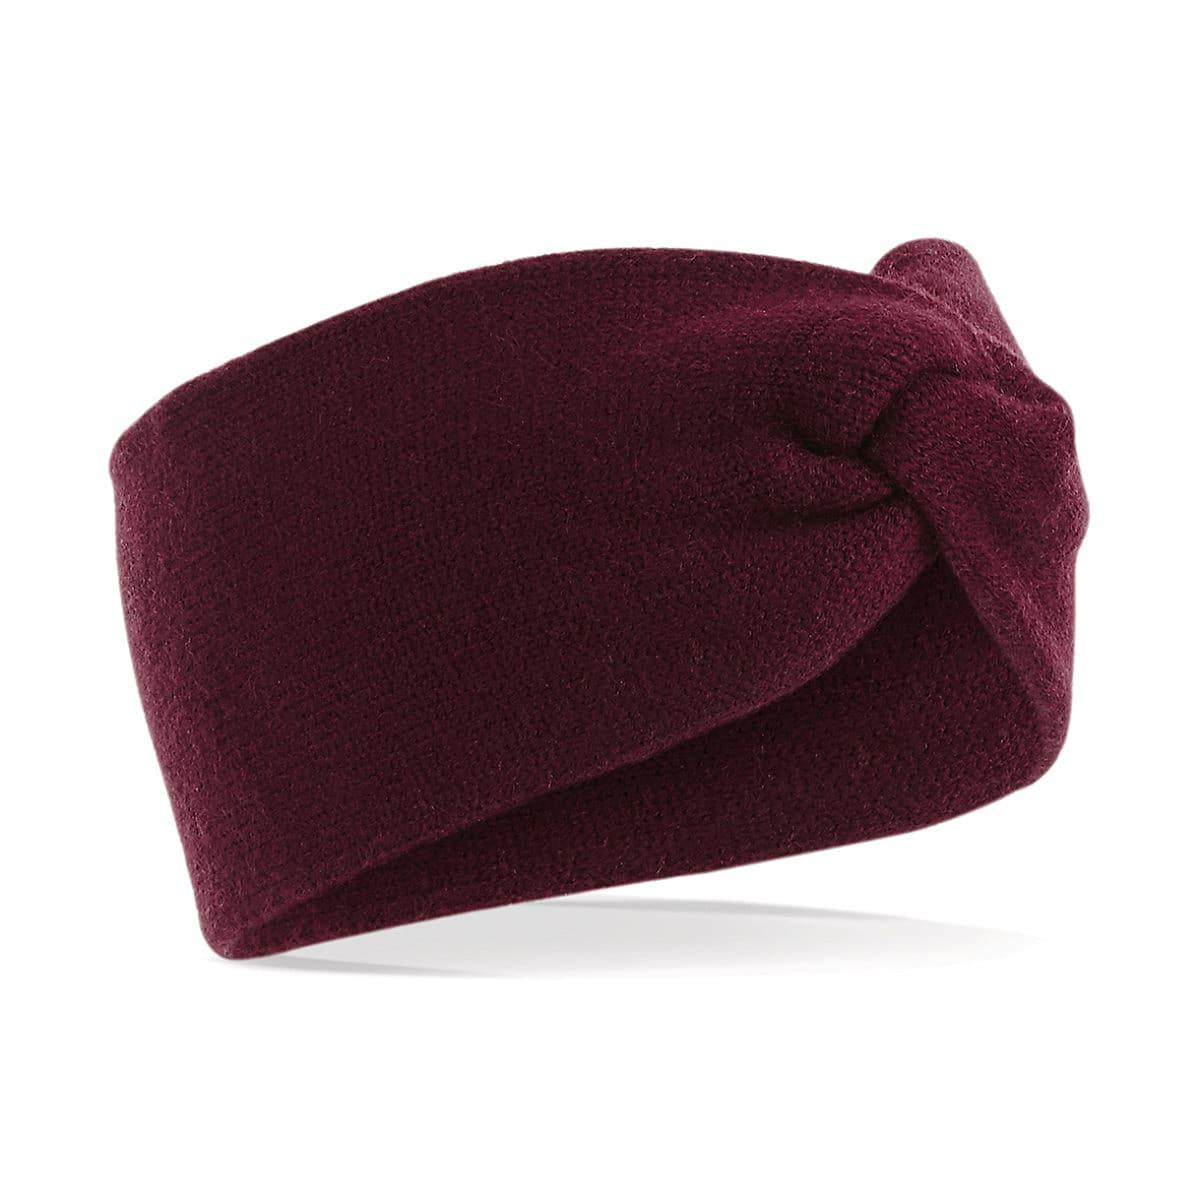 Beechfield Twist Knit Headband in Burgundy (Product Code: B432)